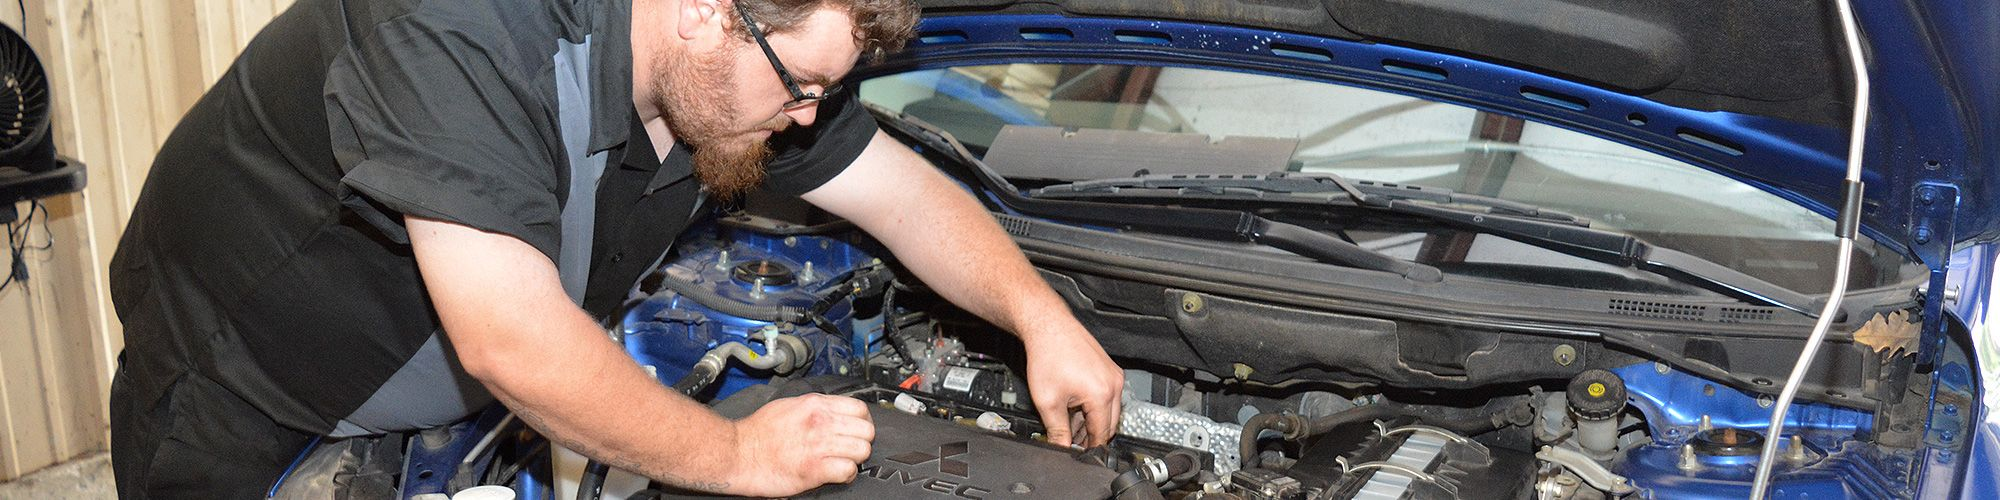 Auto Repair Services in Tomball - Auto Repair Services in Spring